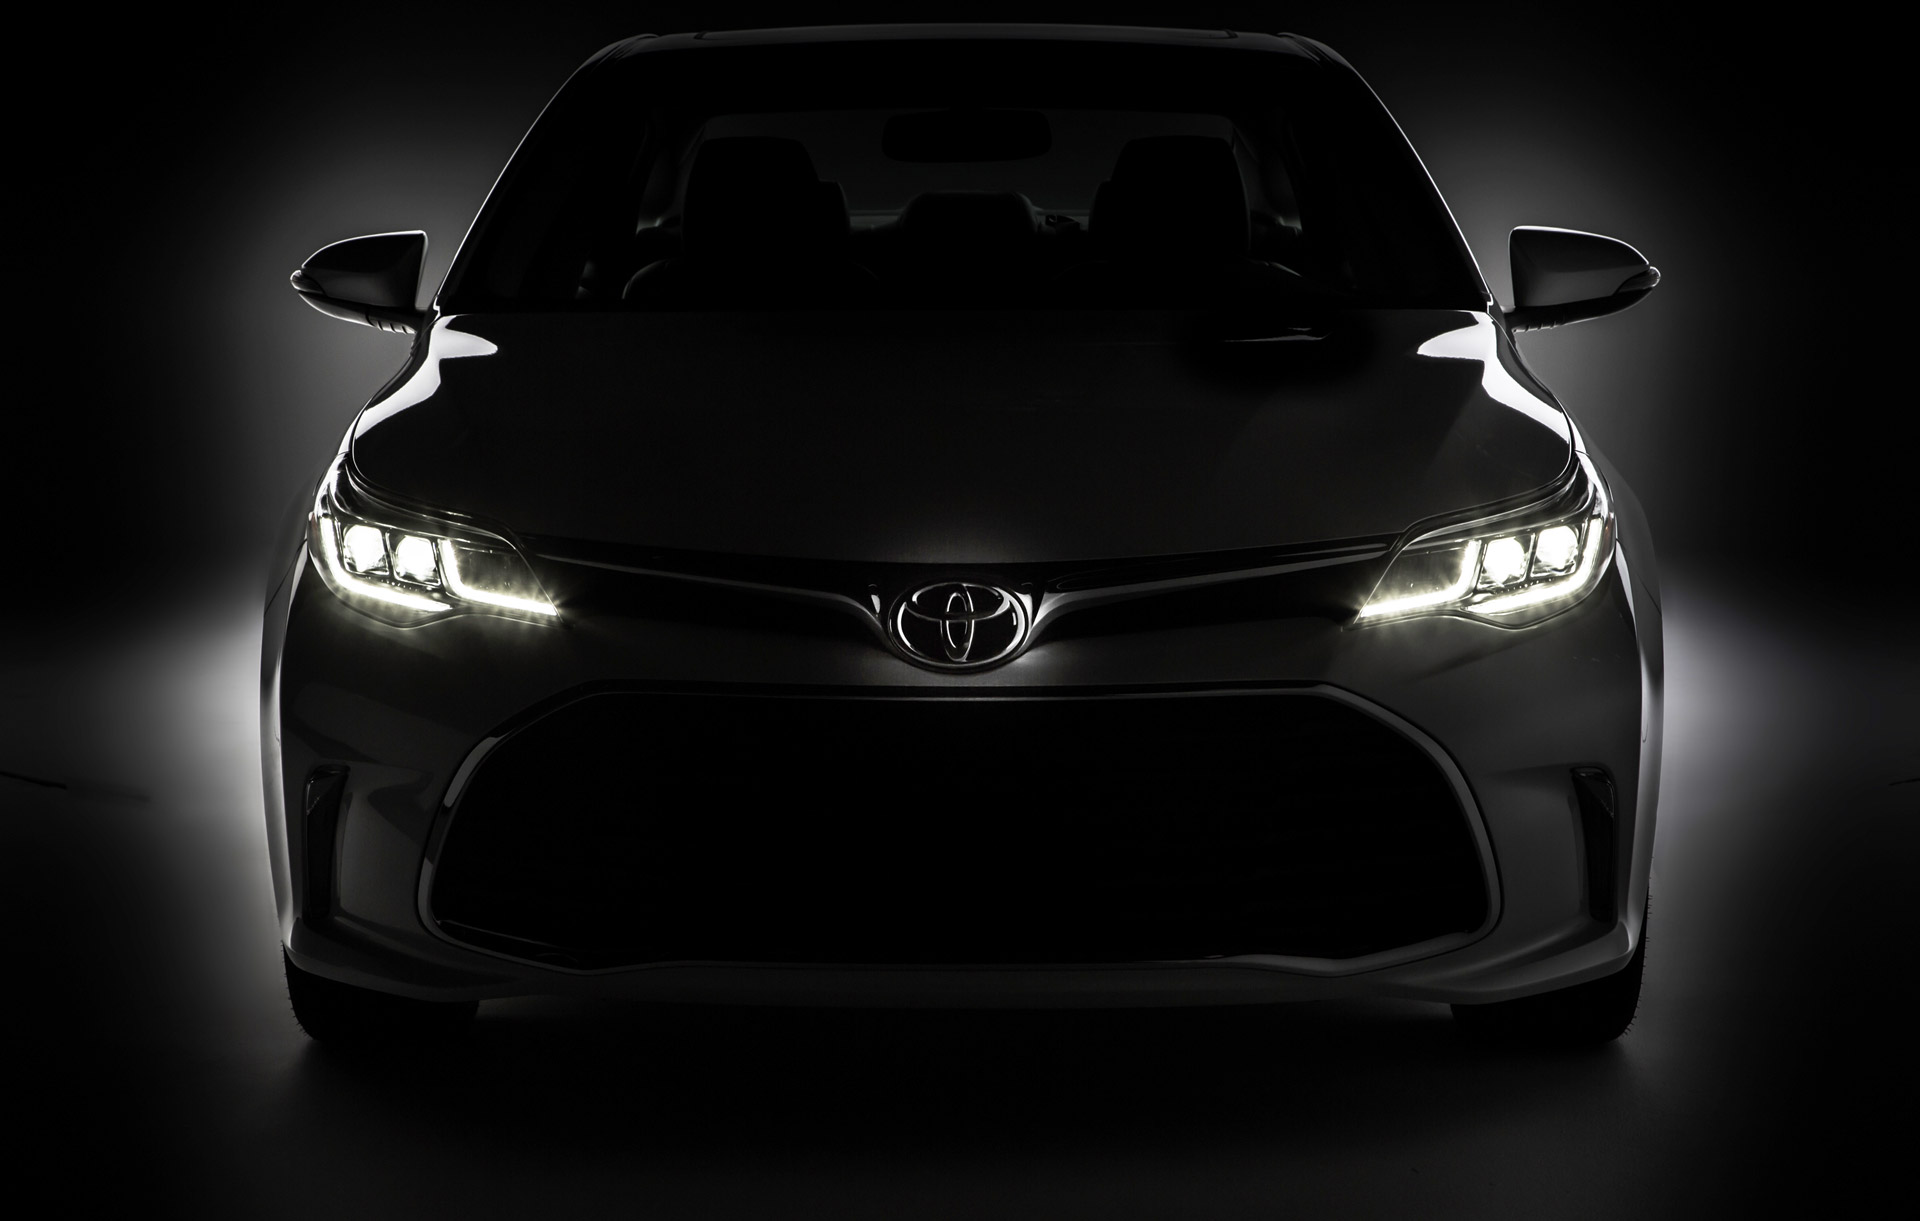 teaser-for-2016-toyota-avalon-debuting-at-2015-chicago-auto-show_100499353_h.jpg